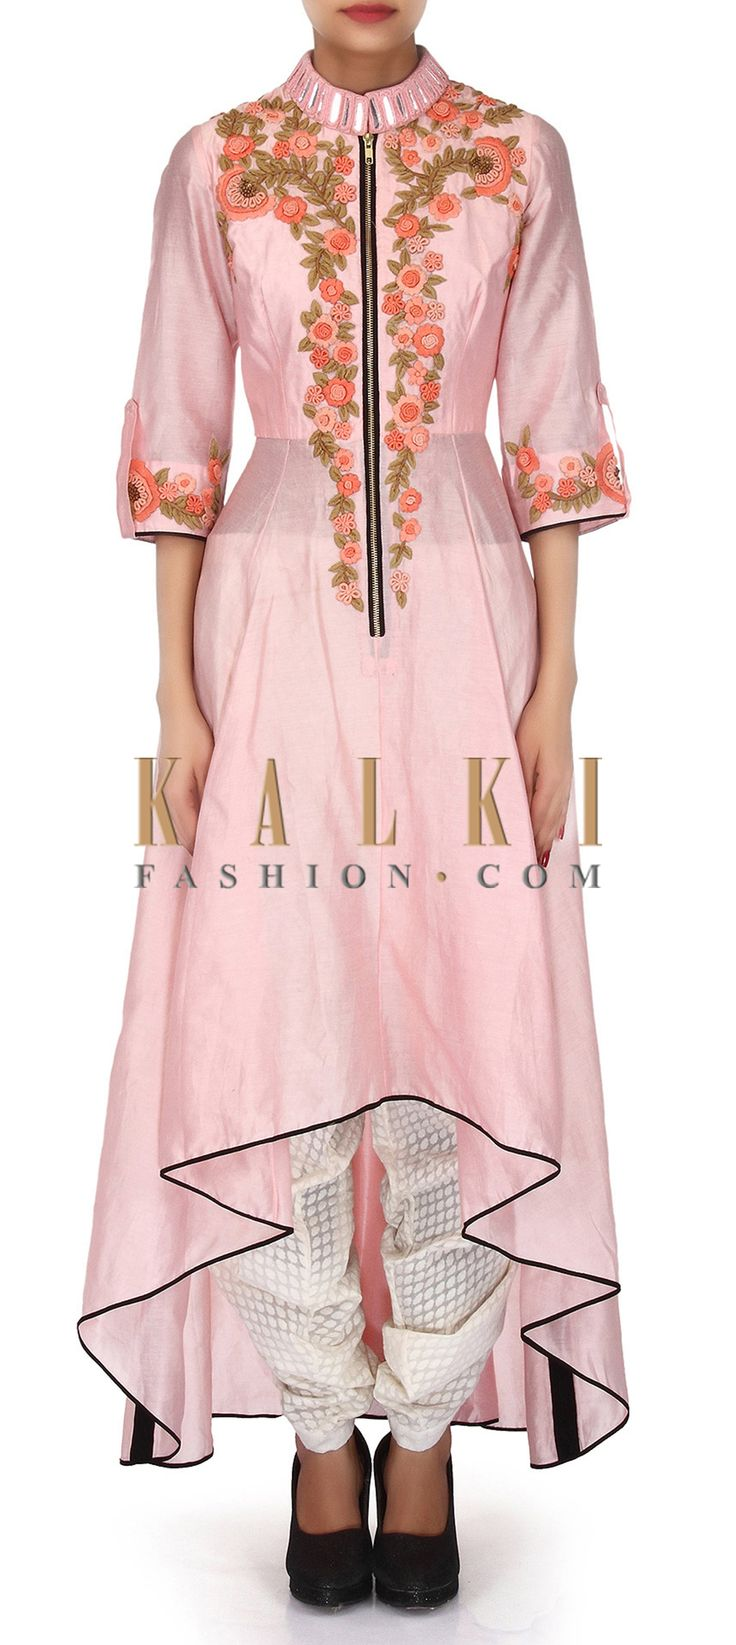 Buy Online from the link below. We ship worldwide (Free Shipping over US$100). Product SKU - 304480. Product Link - http://www.kalkifashion.com/baby-pink-suit-adorn-in-thread-and-mirror-embroidery-only-on-kalki.html